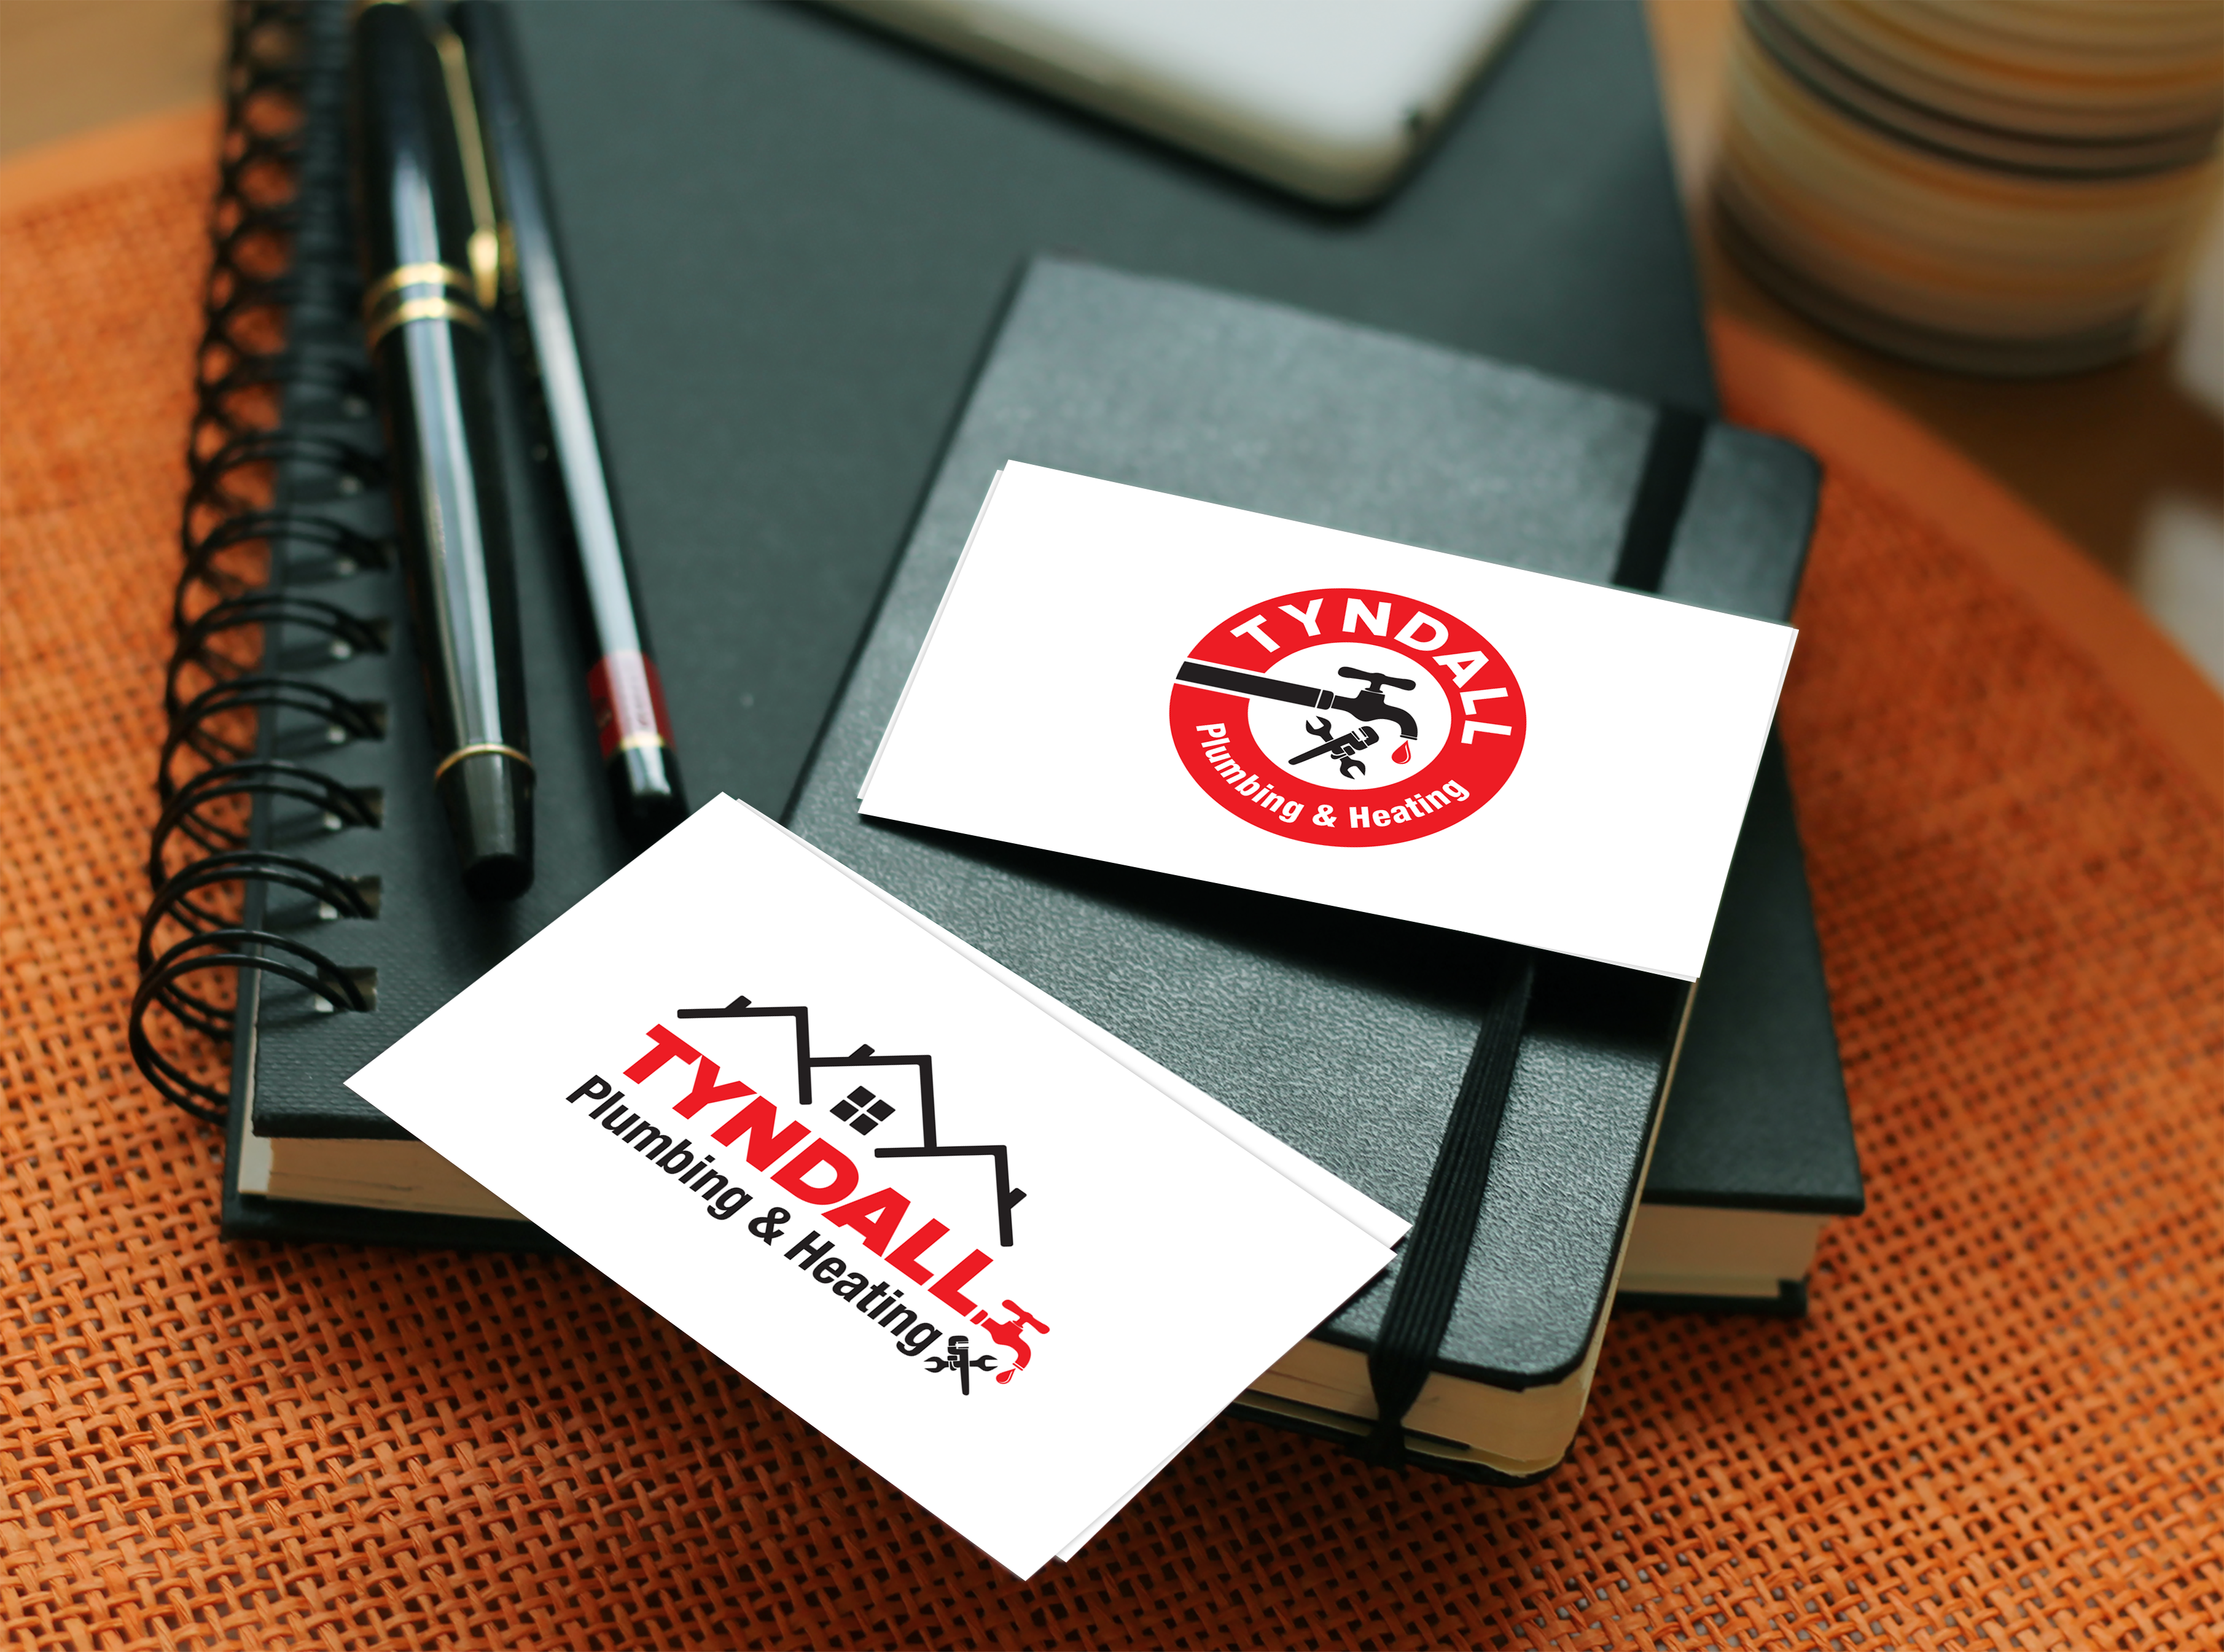 Logo Design by Bac Huu - Entry No. 70 in the Logo Design Contest Imaginative Logo Design for Tyndall Plumbing & Heating.